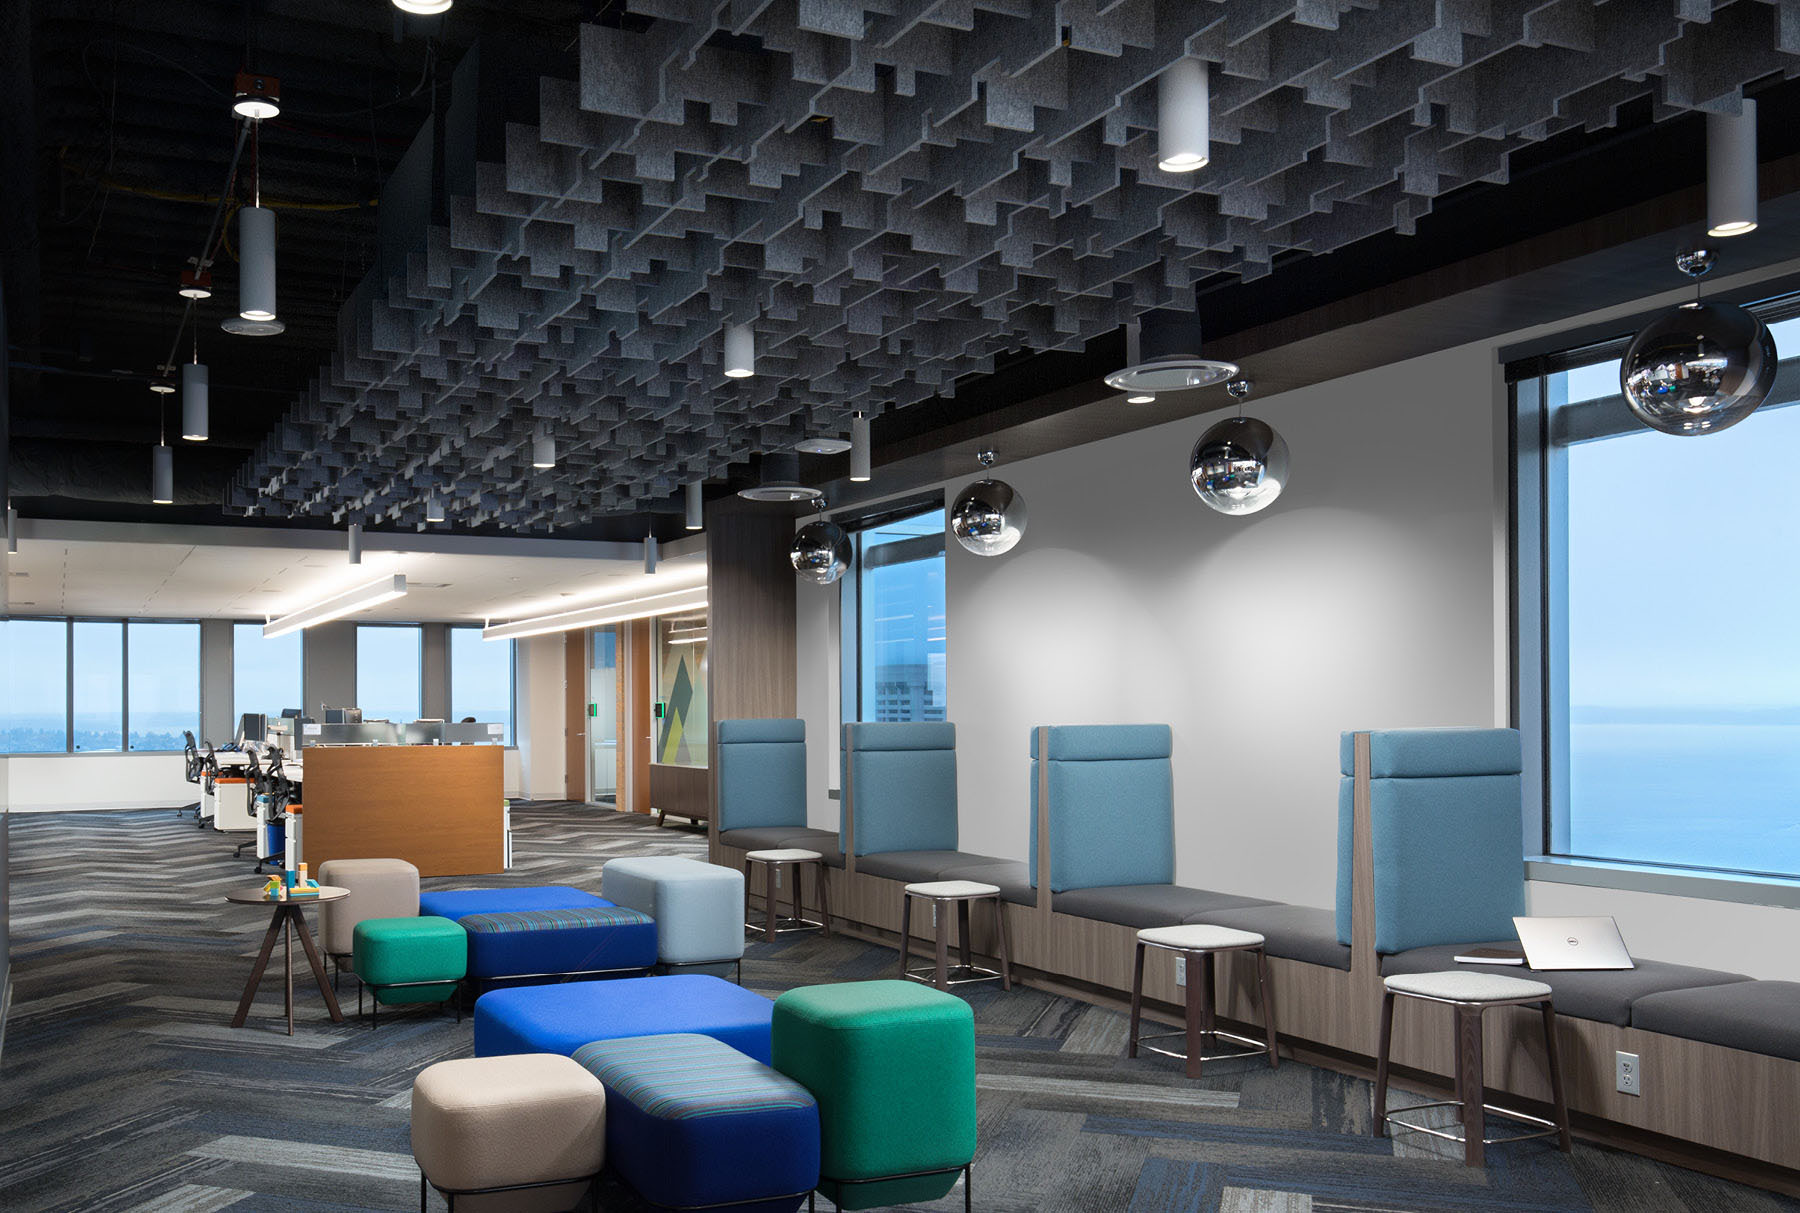 SoftGrid® Skyline acoustical system installed in Zillow office.